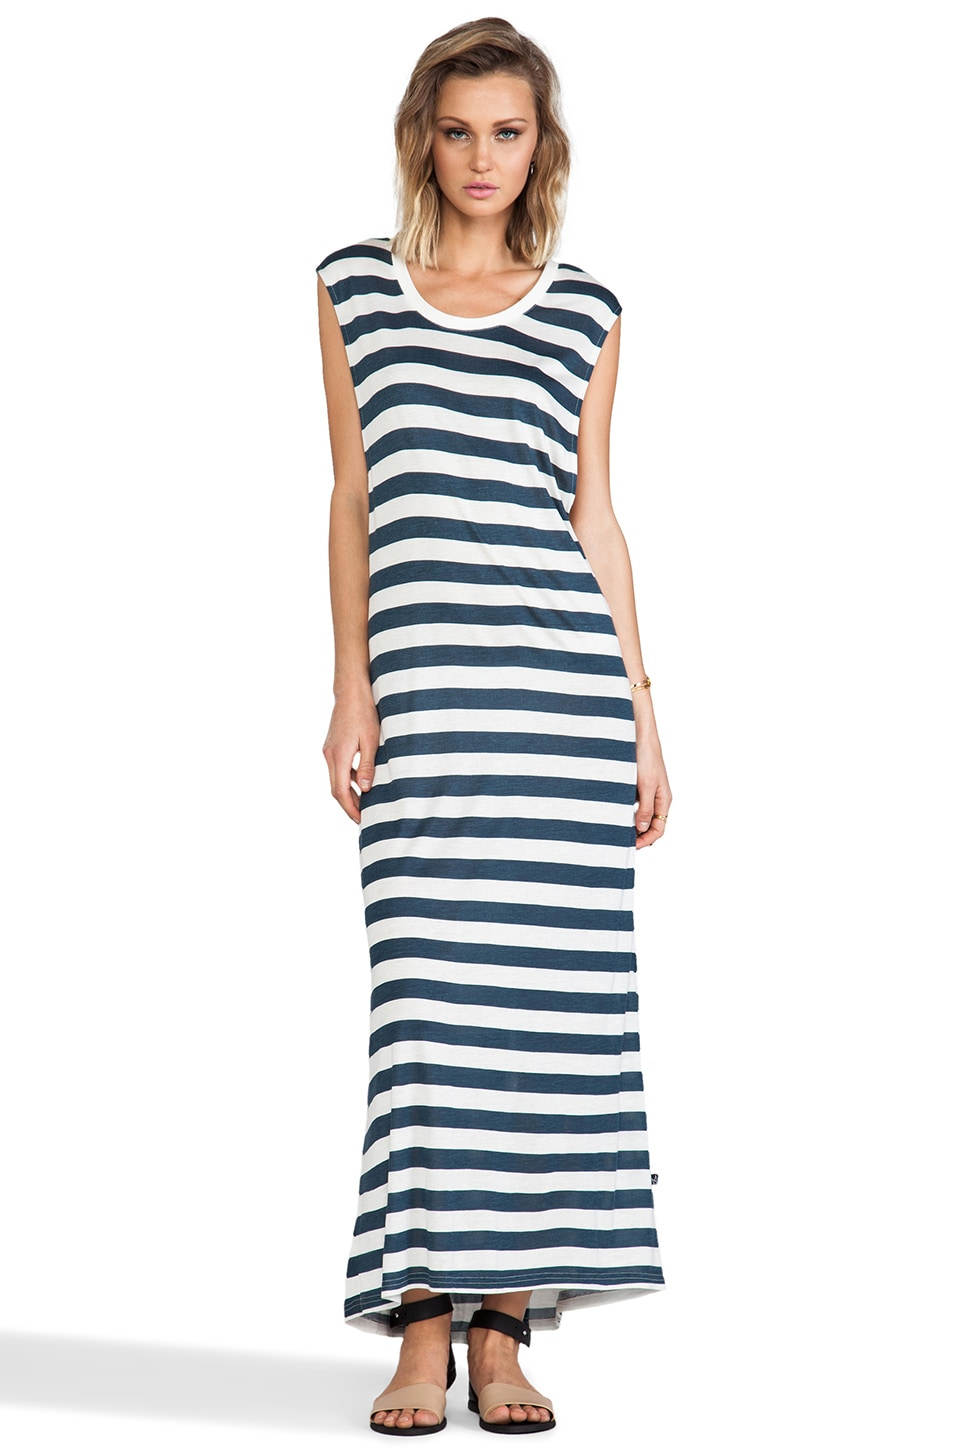 MINKPINK Wild Wild Life Maxi Dress in French Blue